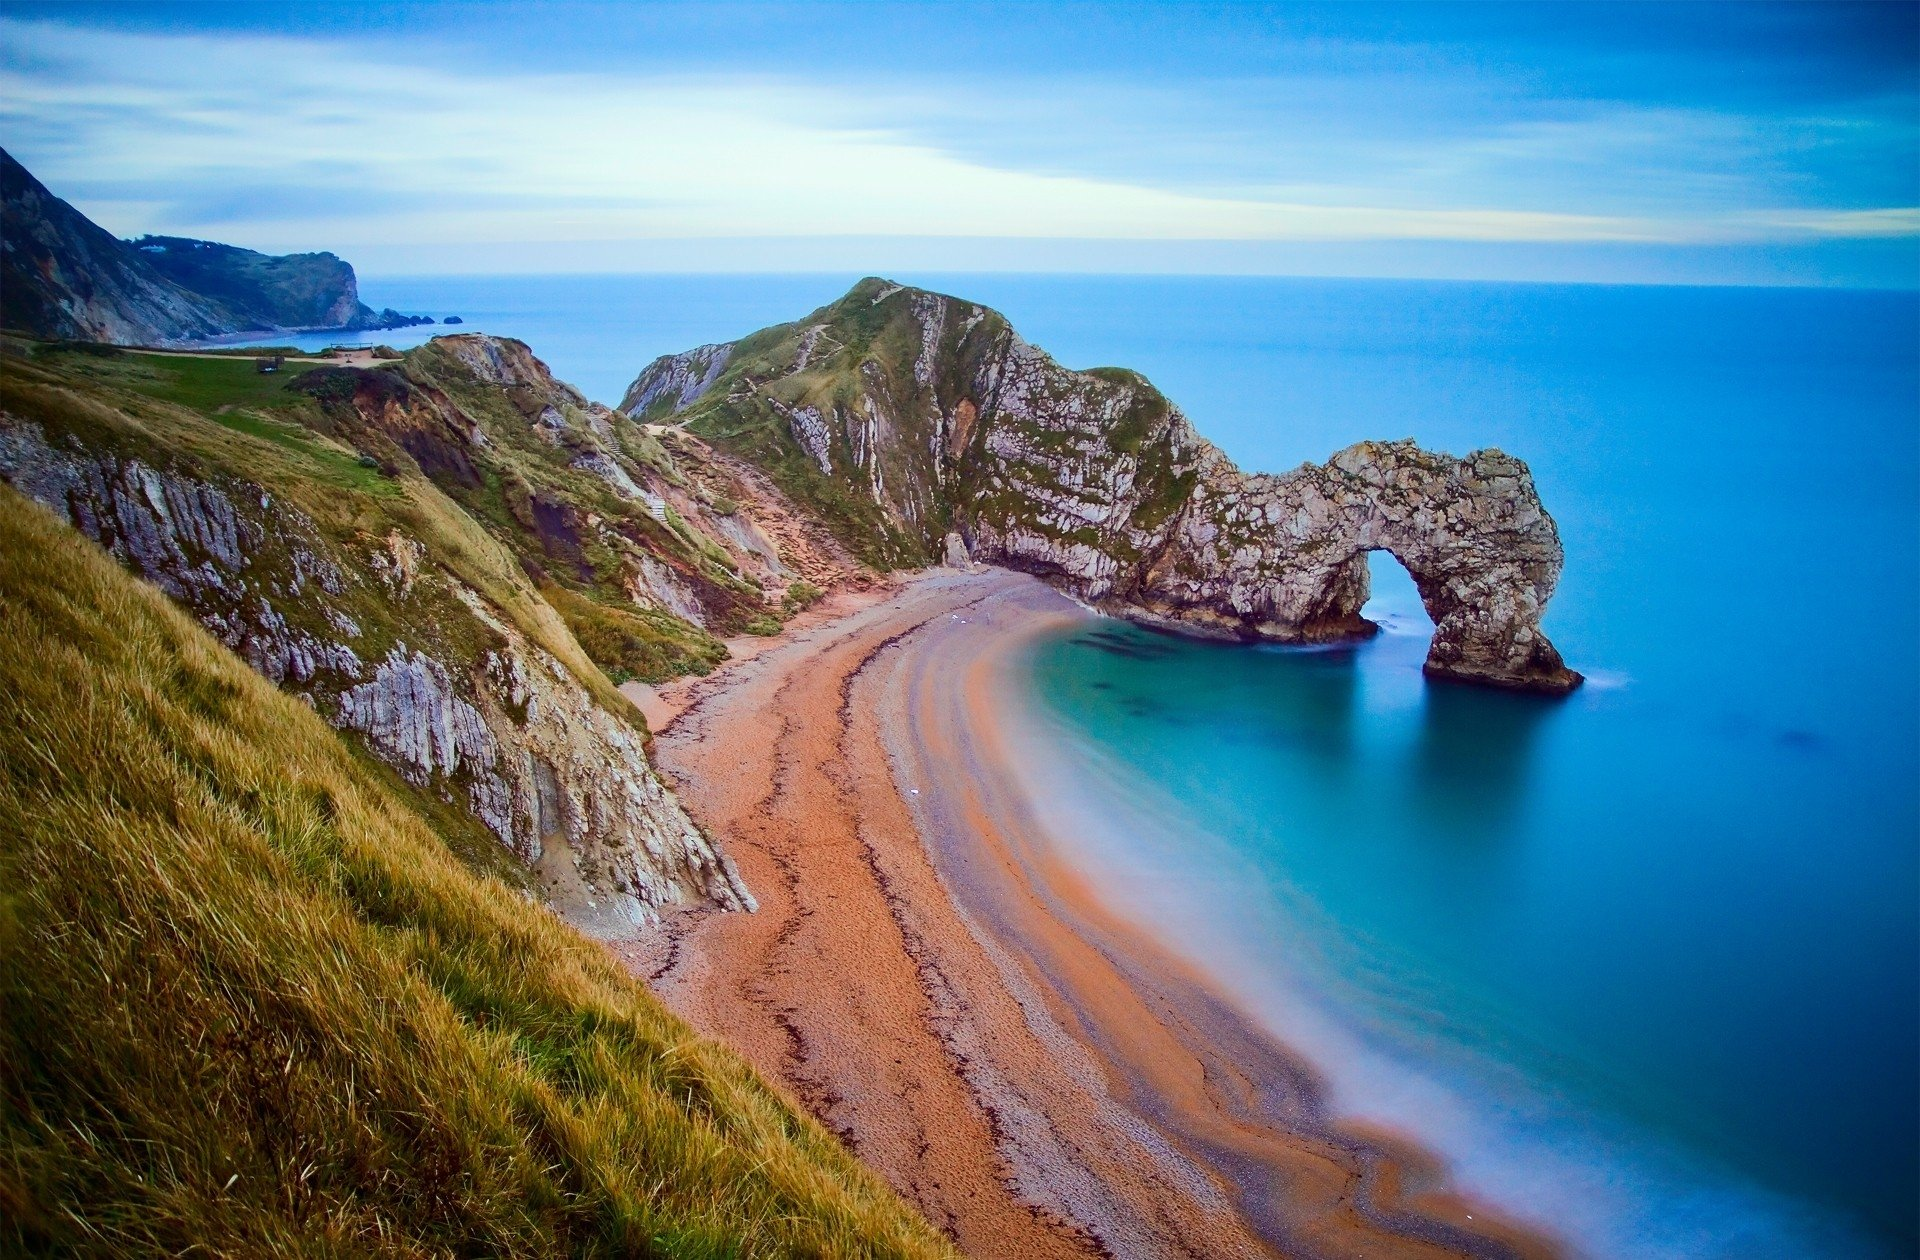 Clear Wallpaper Iphone X Durdle Door Full Hd Wallpaper And Background Image